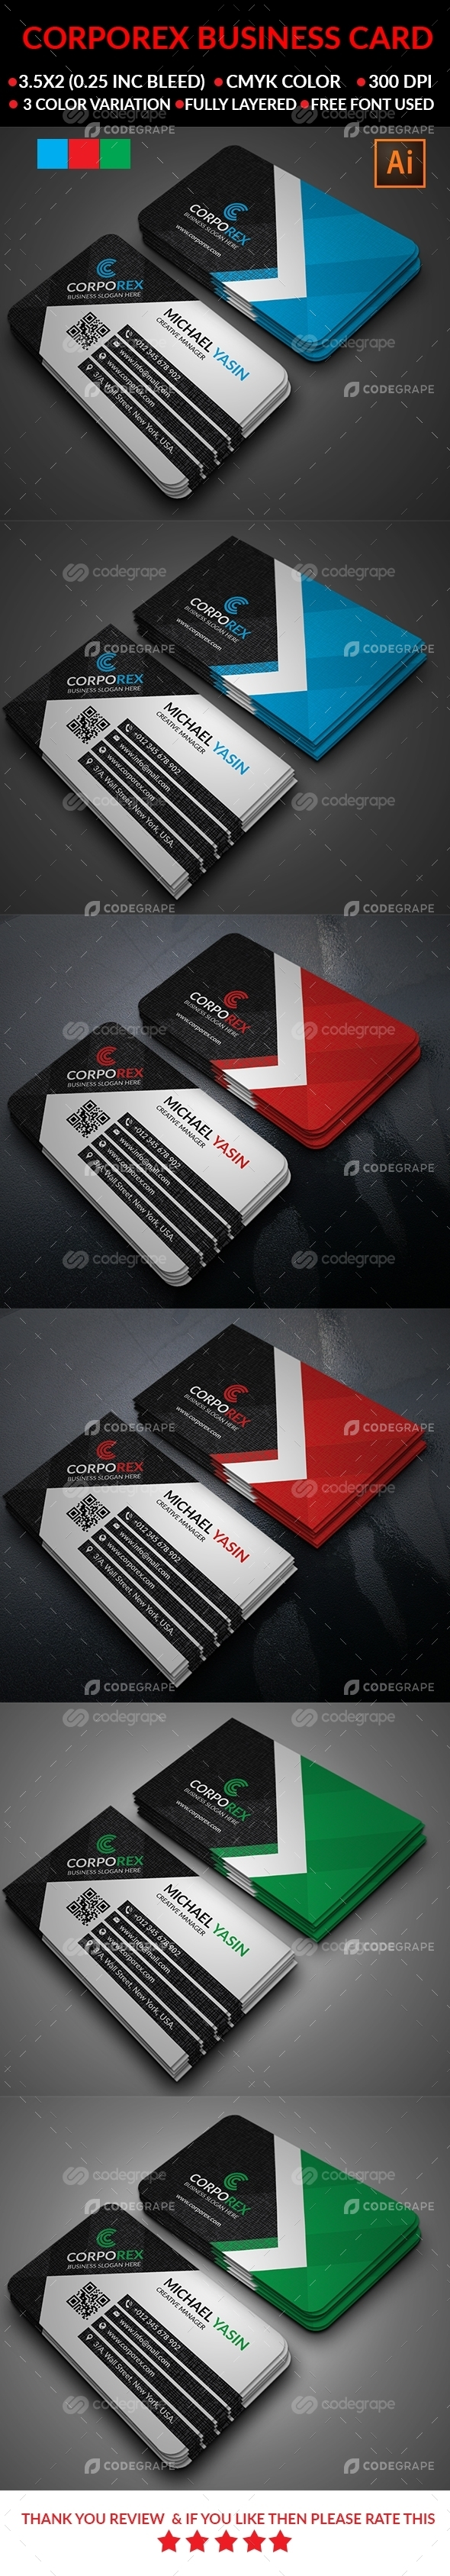 Corporate Business Card_Vol-1